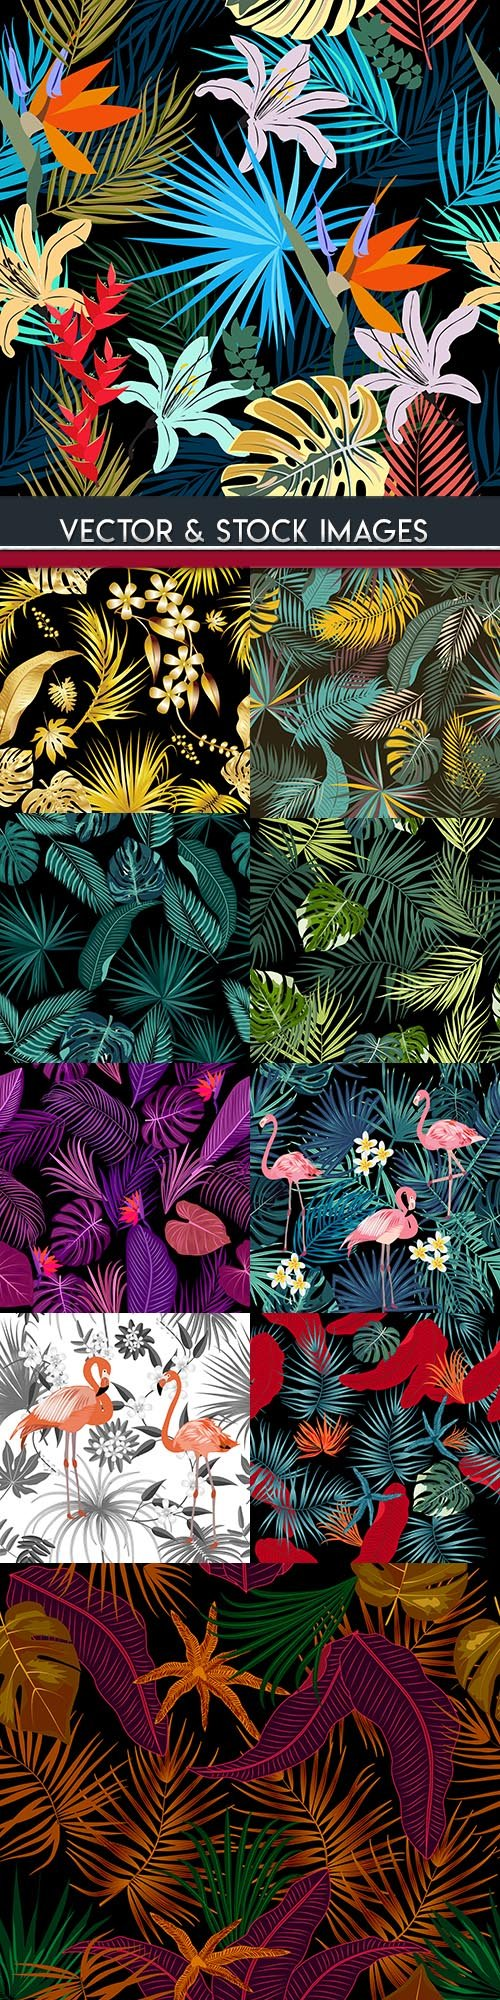 Tropical exotic floral leaf seamless pattern design